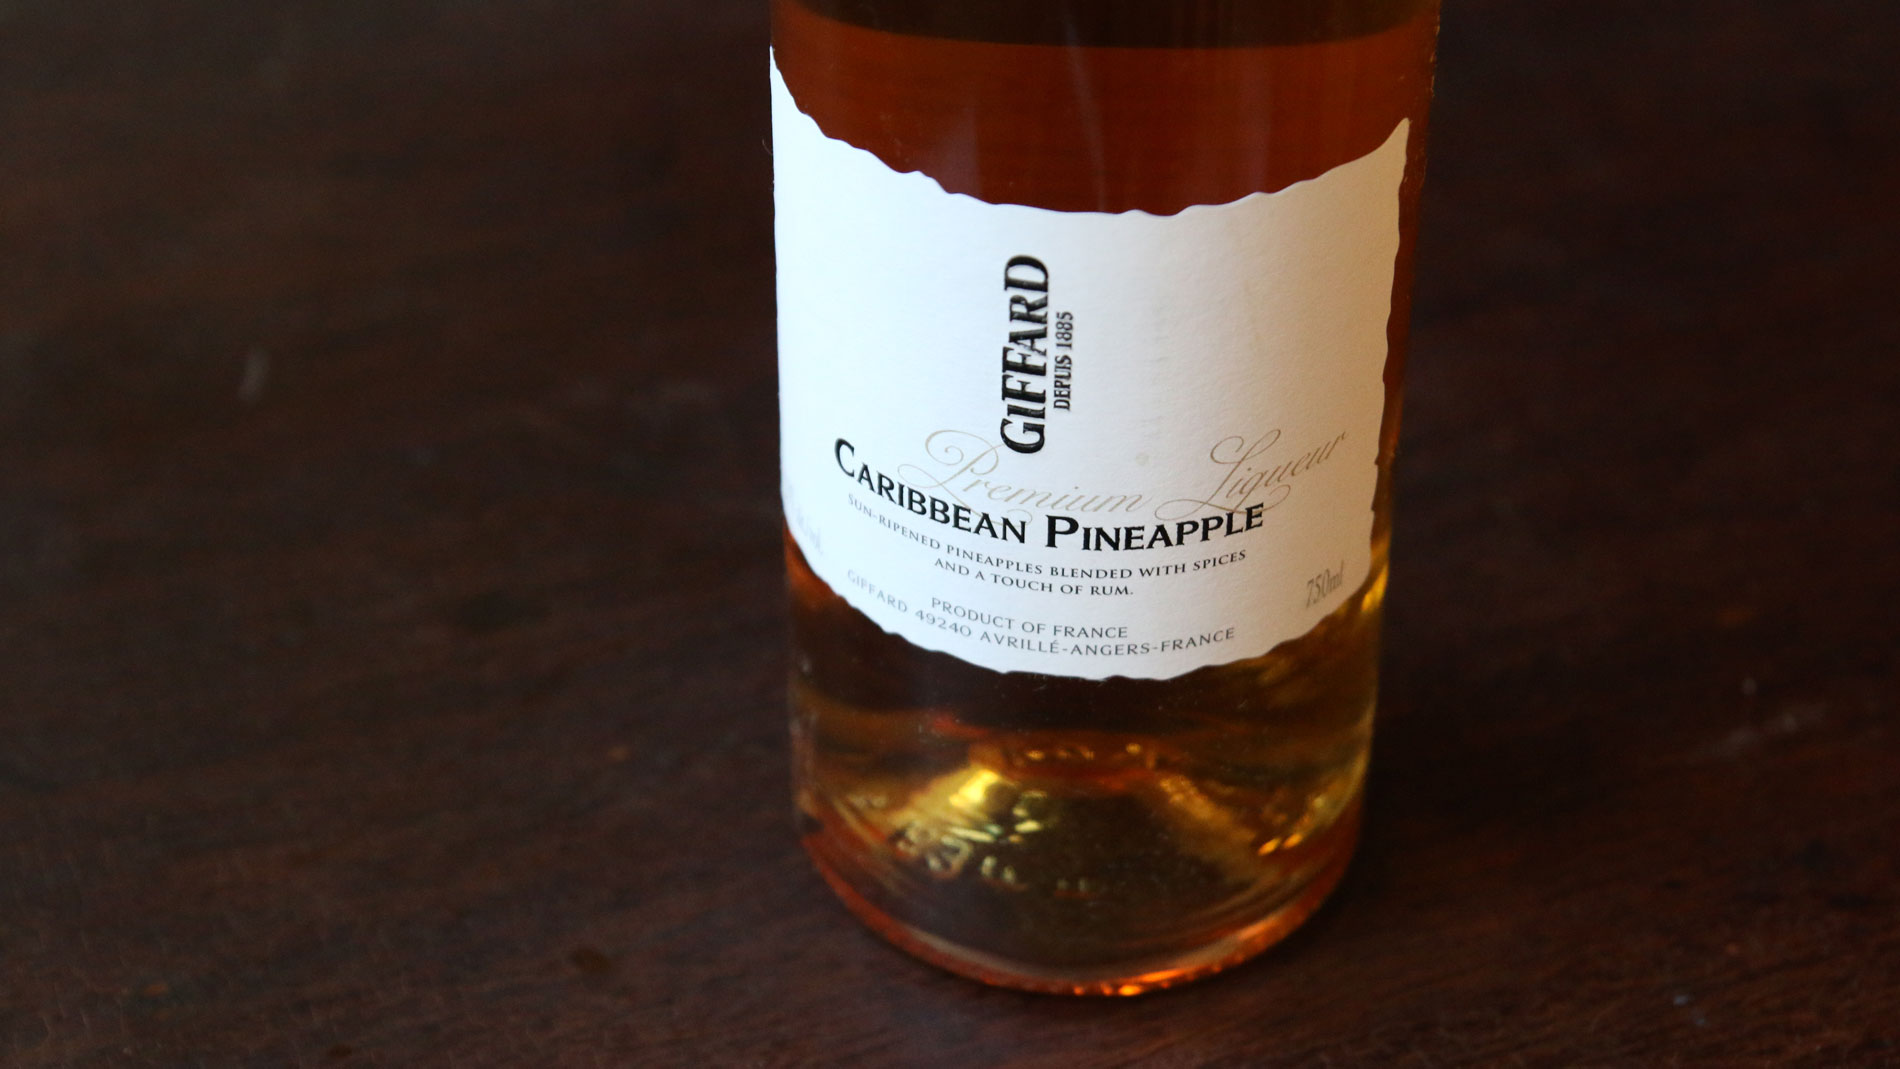 Pineapple Liqueur